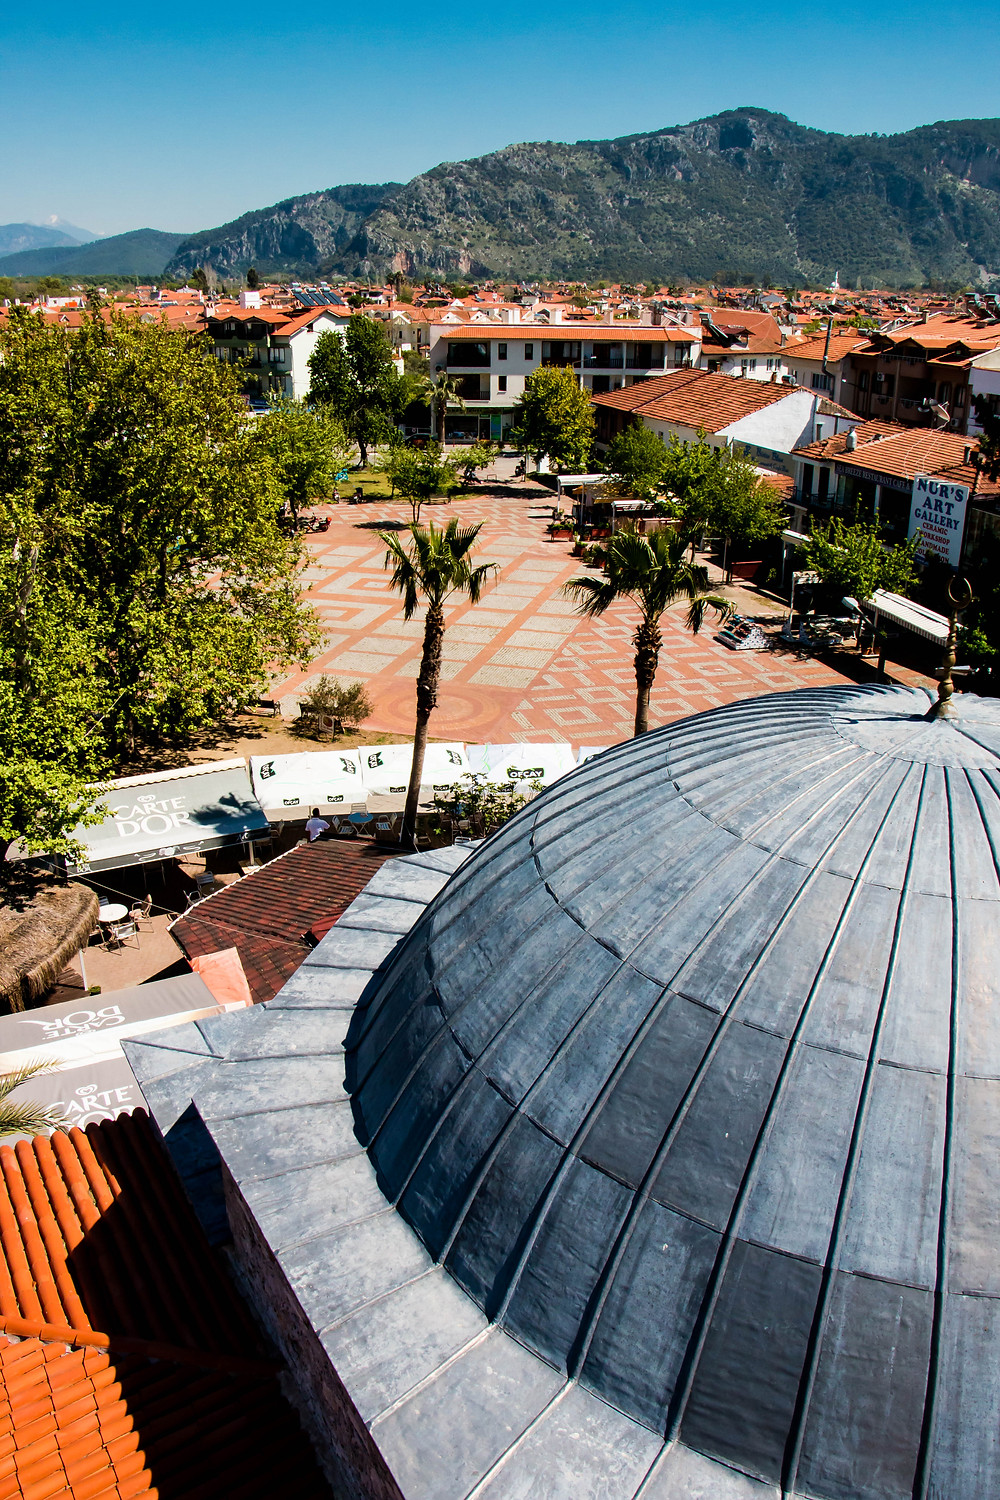 The new dome of the Dalyan Mosque and the Mosque Square